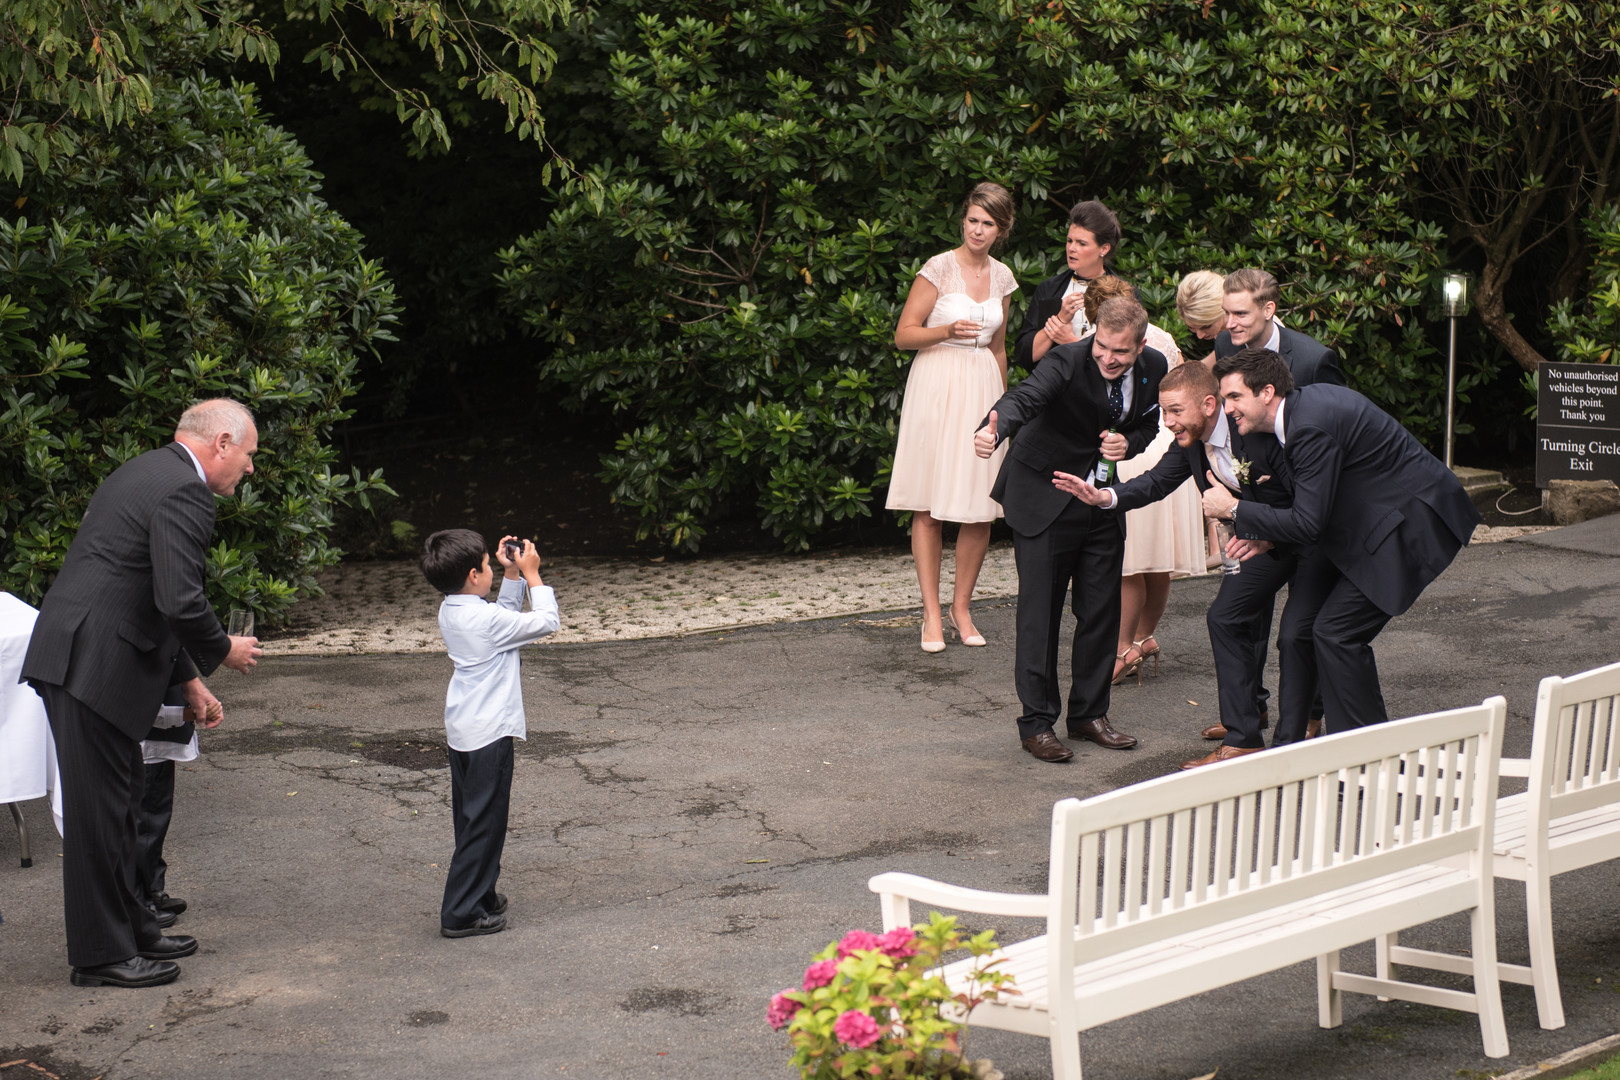 Child takes group photograph